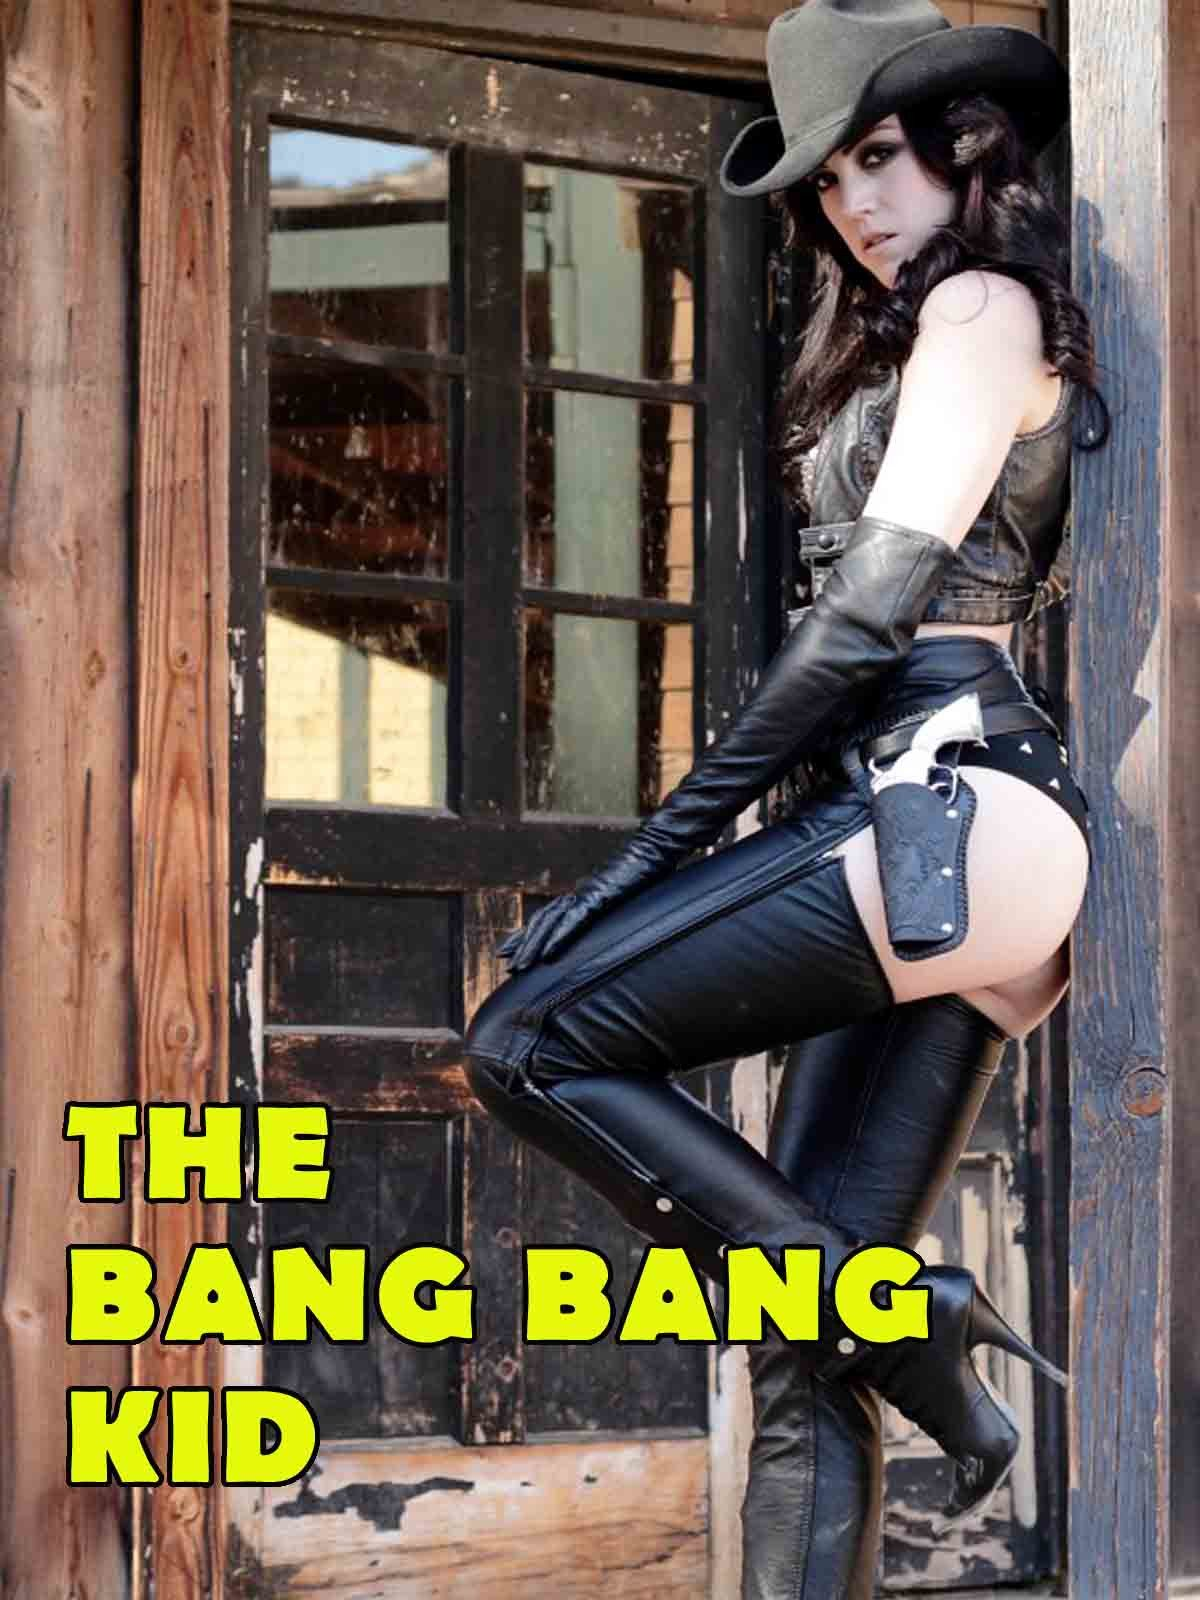 The Bang Bang Kid